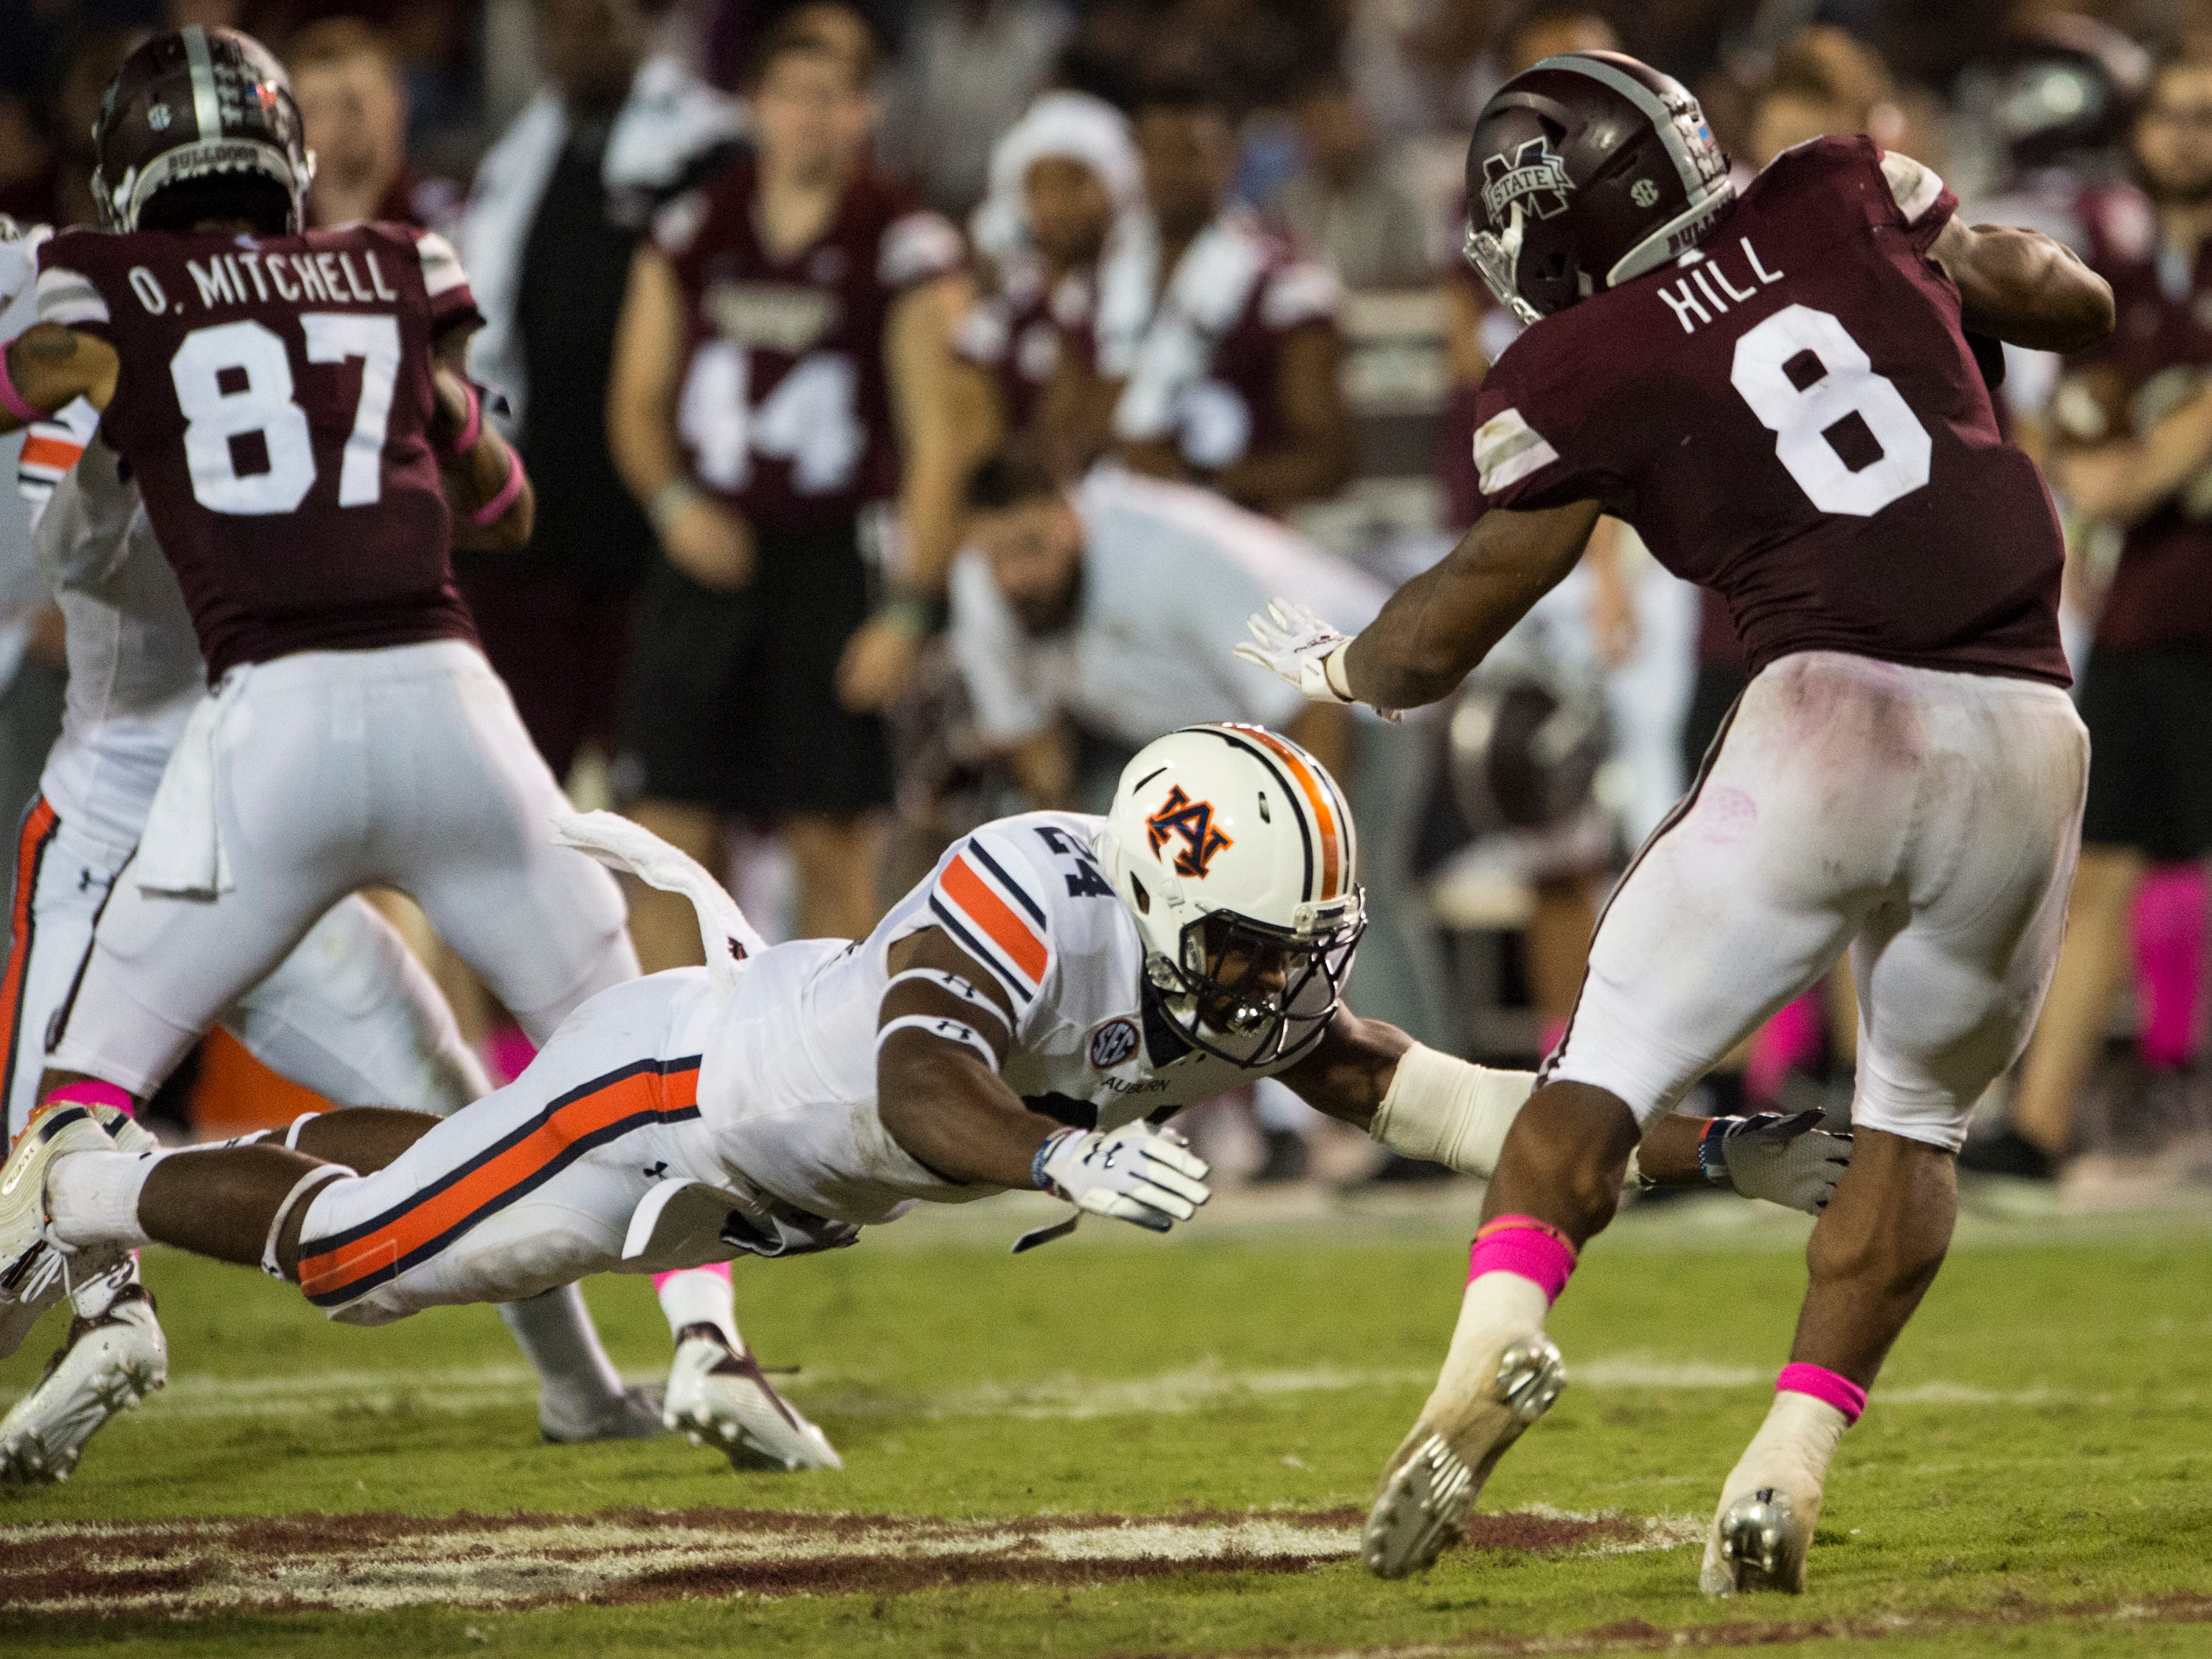 Auburn's Daniel Thomas (24) attempts to tackle Mississippi State's Kylin Hill (8) at Davis Wade Stadium in Starkville, Miss., on Saturday, Oct. 6, 2018. Mississippi State defeated Auburn 23-9.